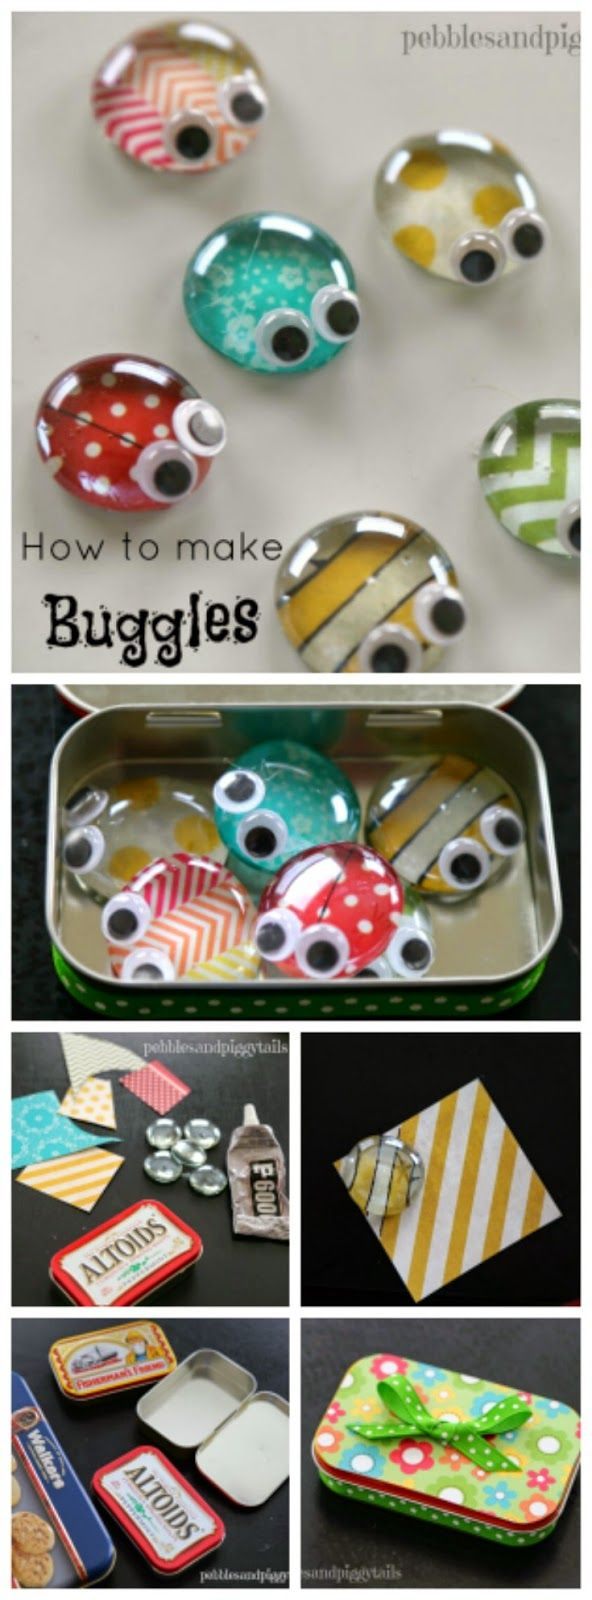 Cute Altoid tin project to reuse those tiny containers. Make a fun travel toy for kids called buggles. It's a little bug collection in the tiny tin. A little bug collection craft that is fun to carry and play with.